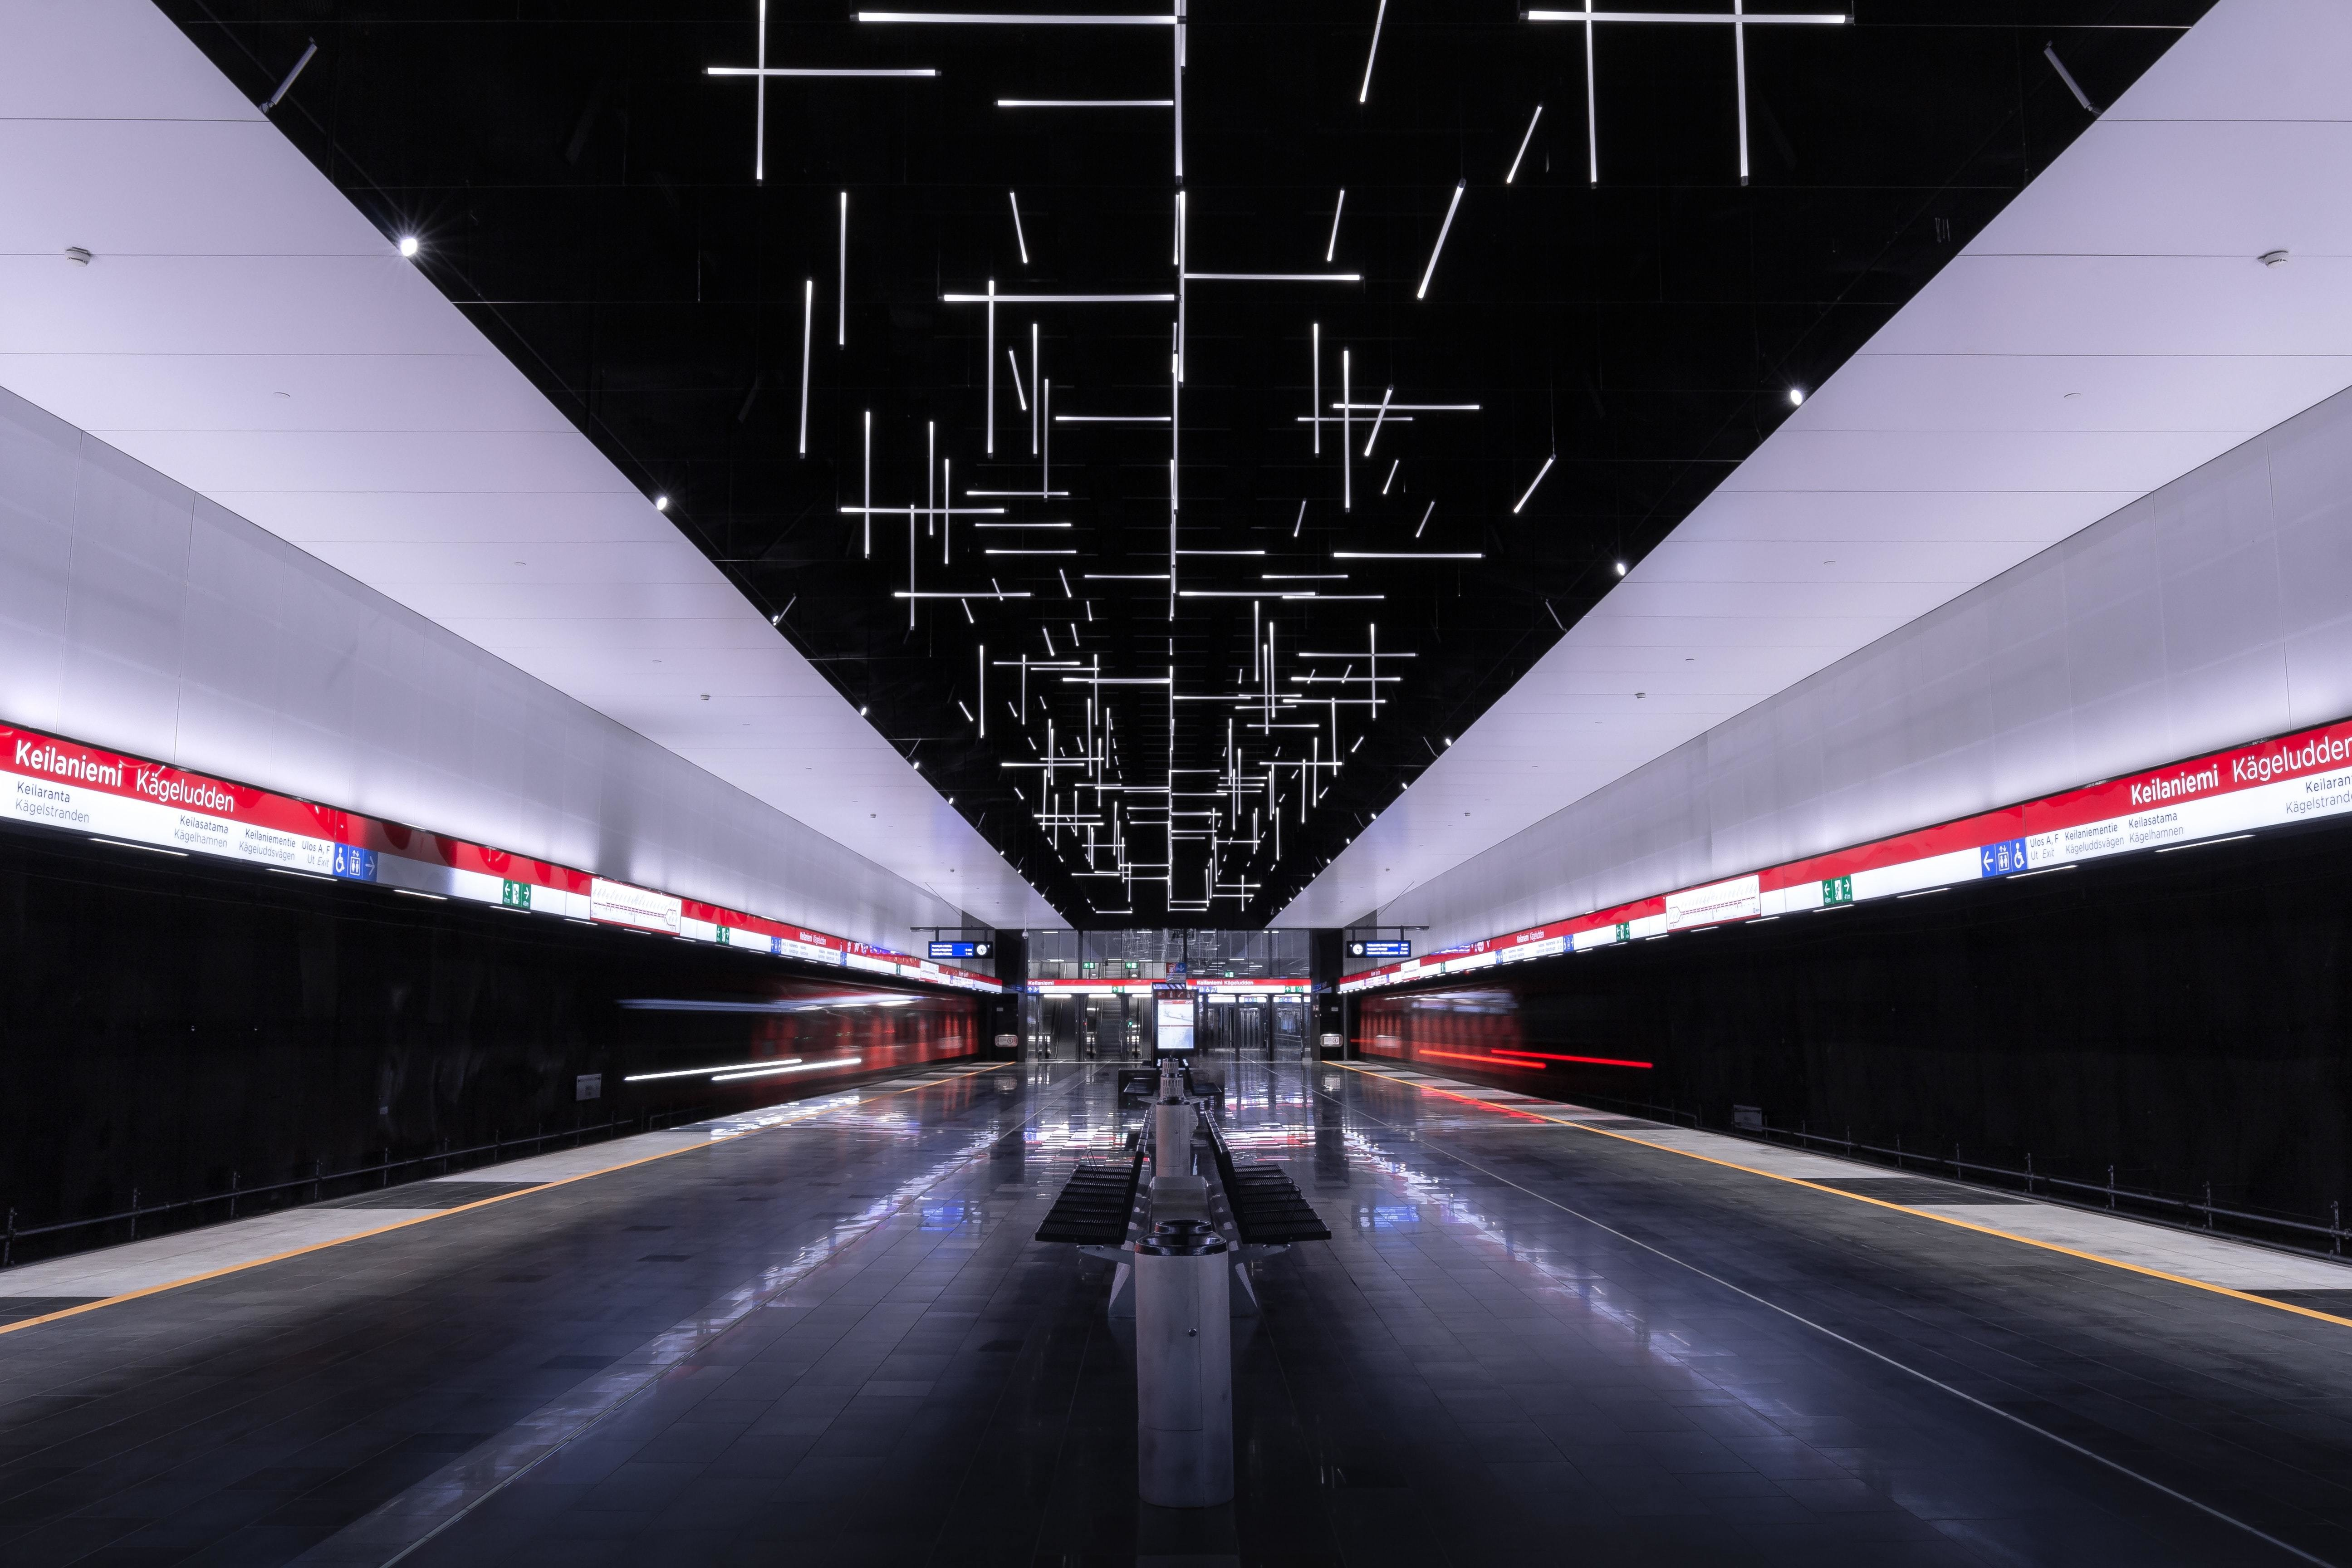 The Keilaniemi subway station in Espoo, Finland. 2021 will be big a big year for global infrastructure development.